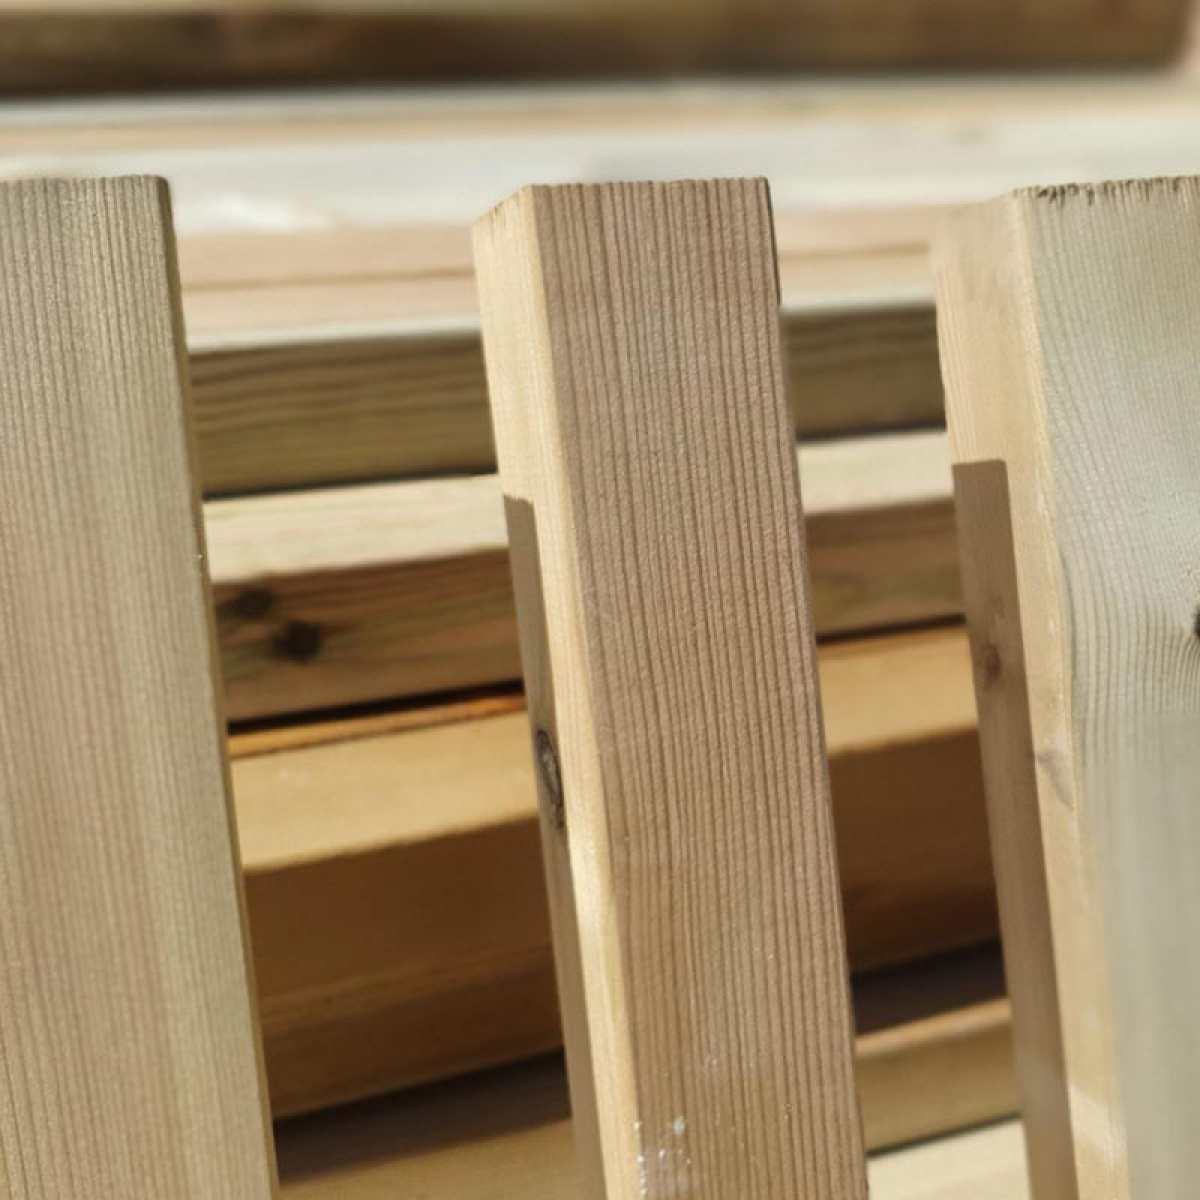 decking spindles websterstimber 800x800 1 Image by Websters Timber